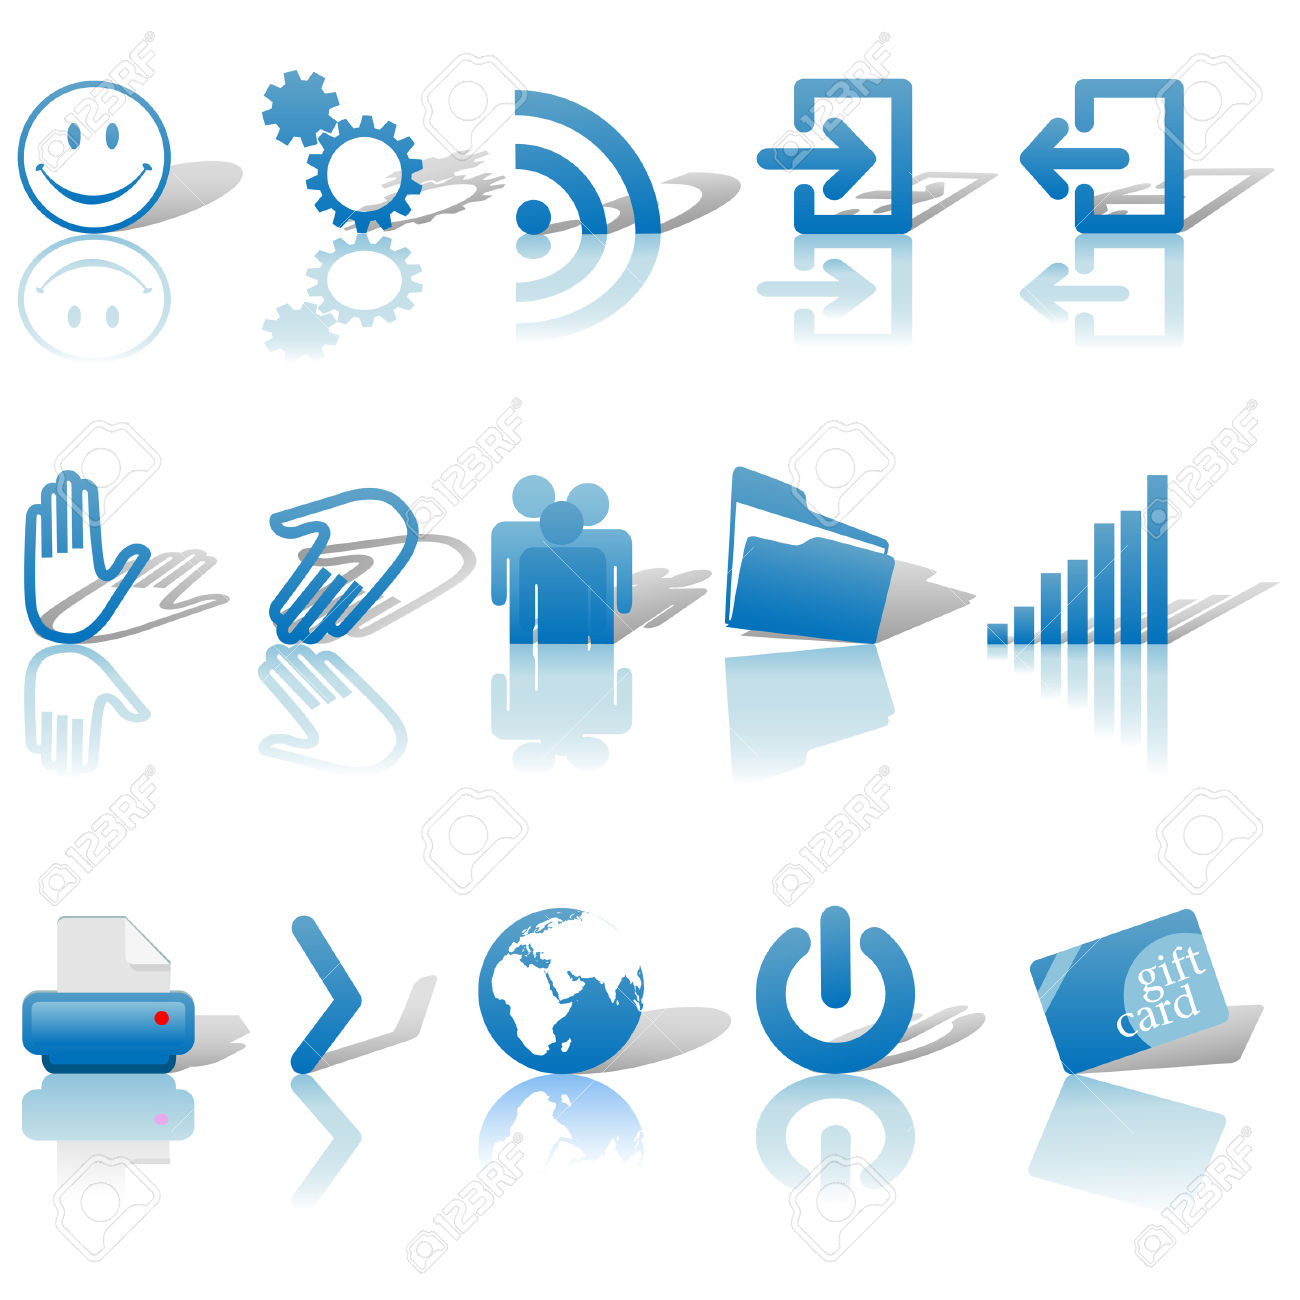 Blue Icon Symbol Set 2: Printer; Gears; Chart; Earth; People.